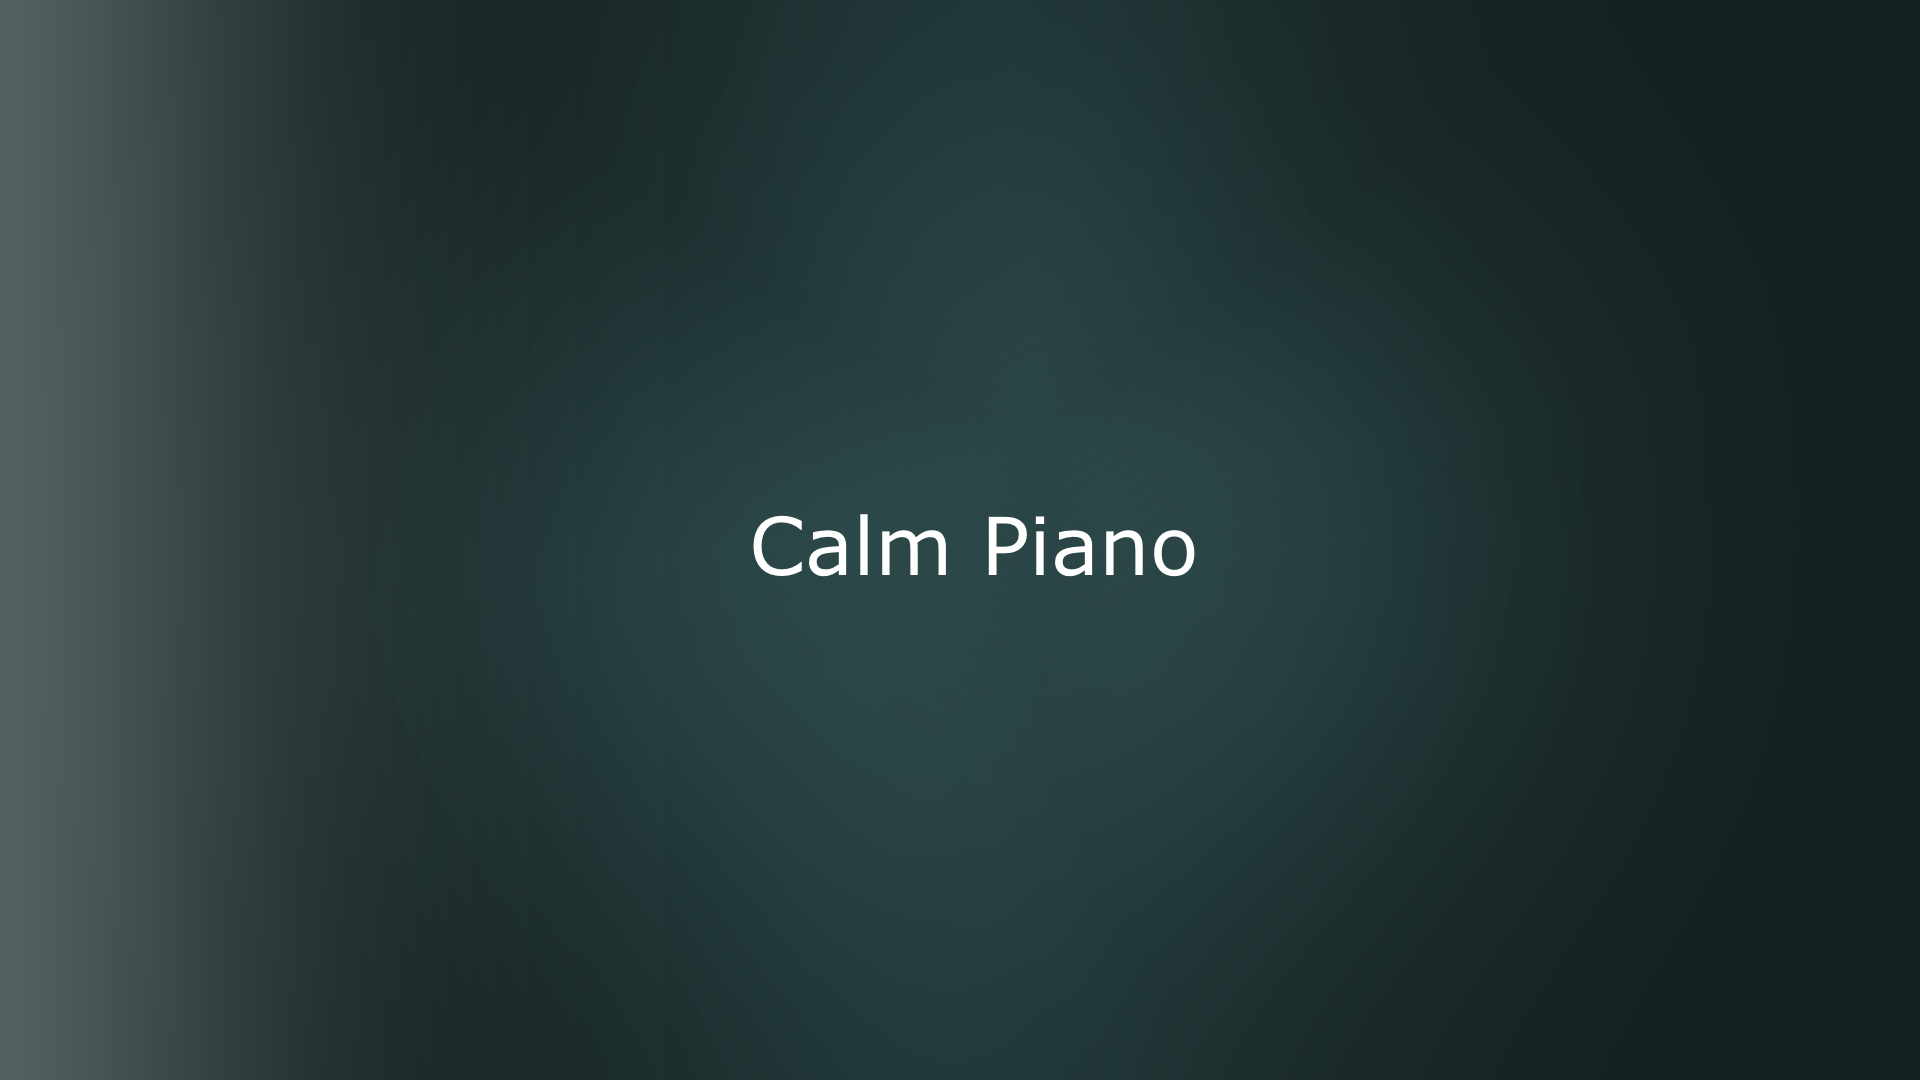 dark blue greyish color behind text with calm piano